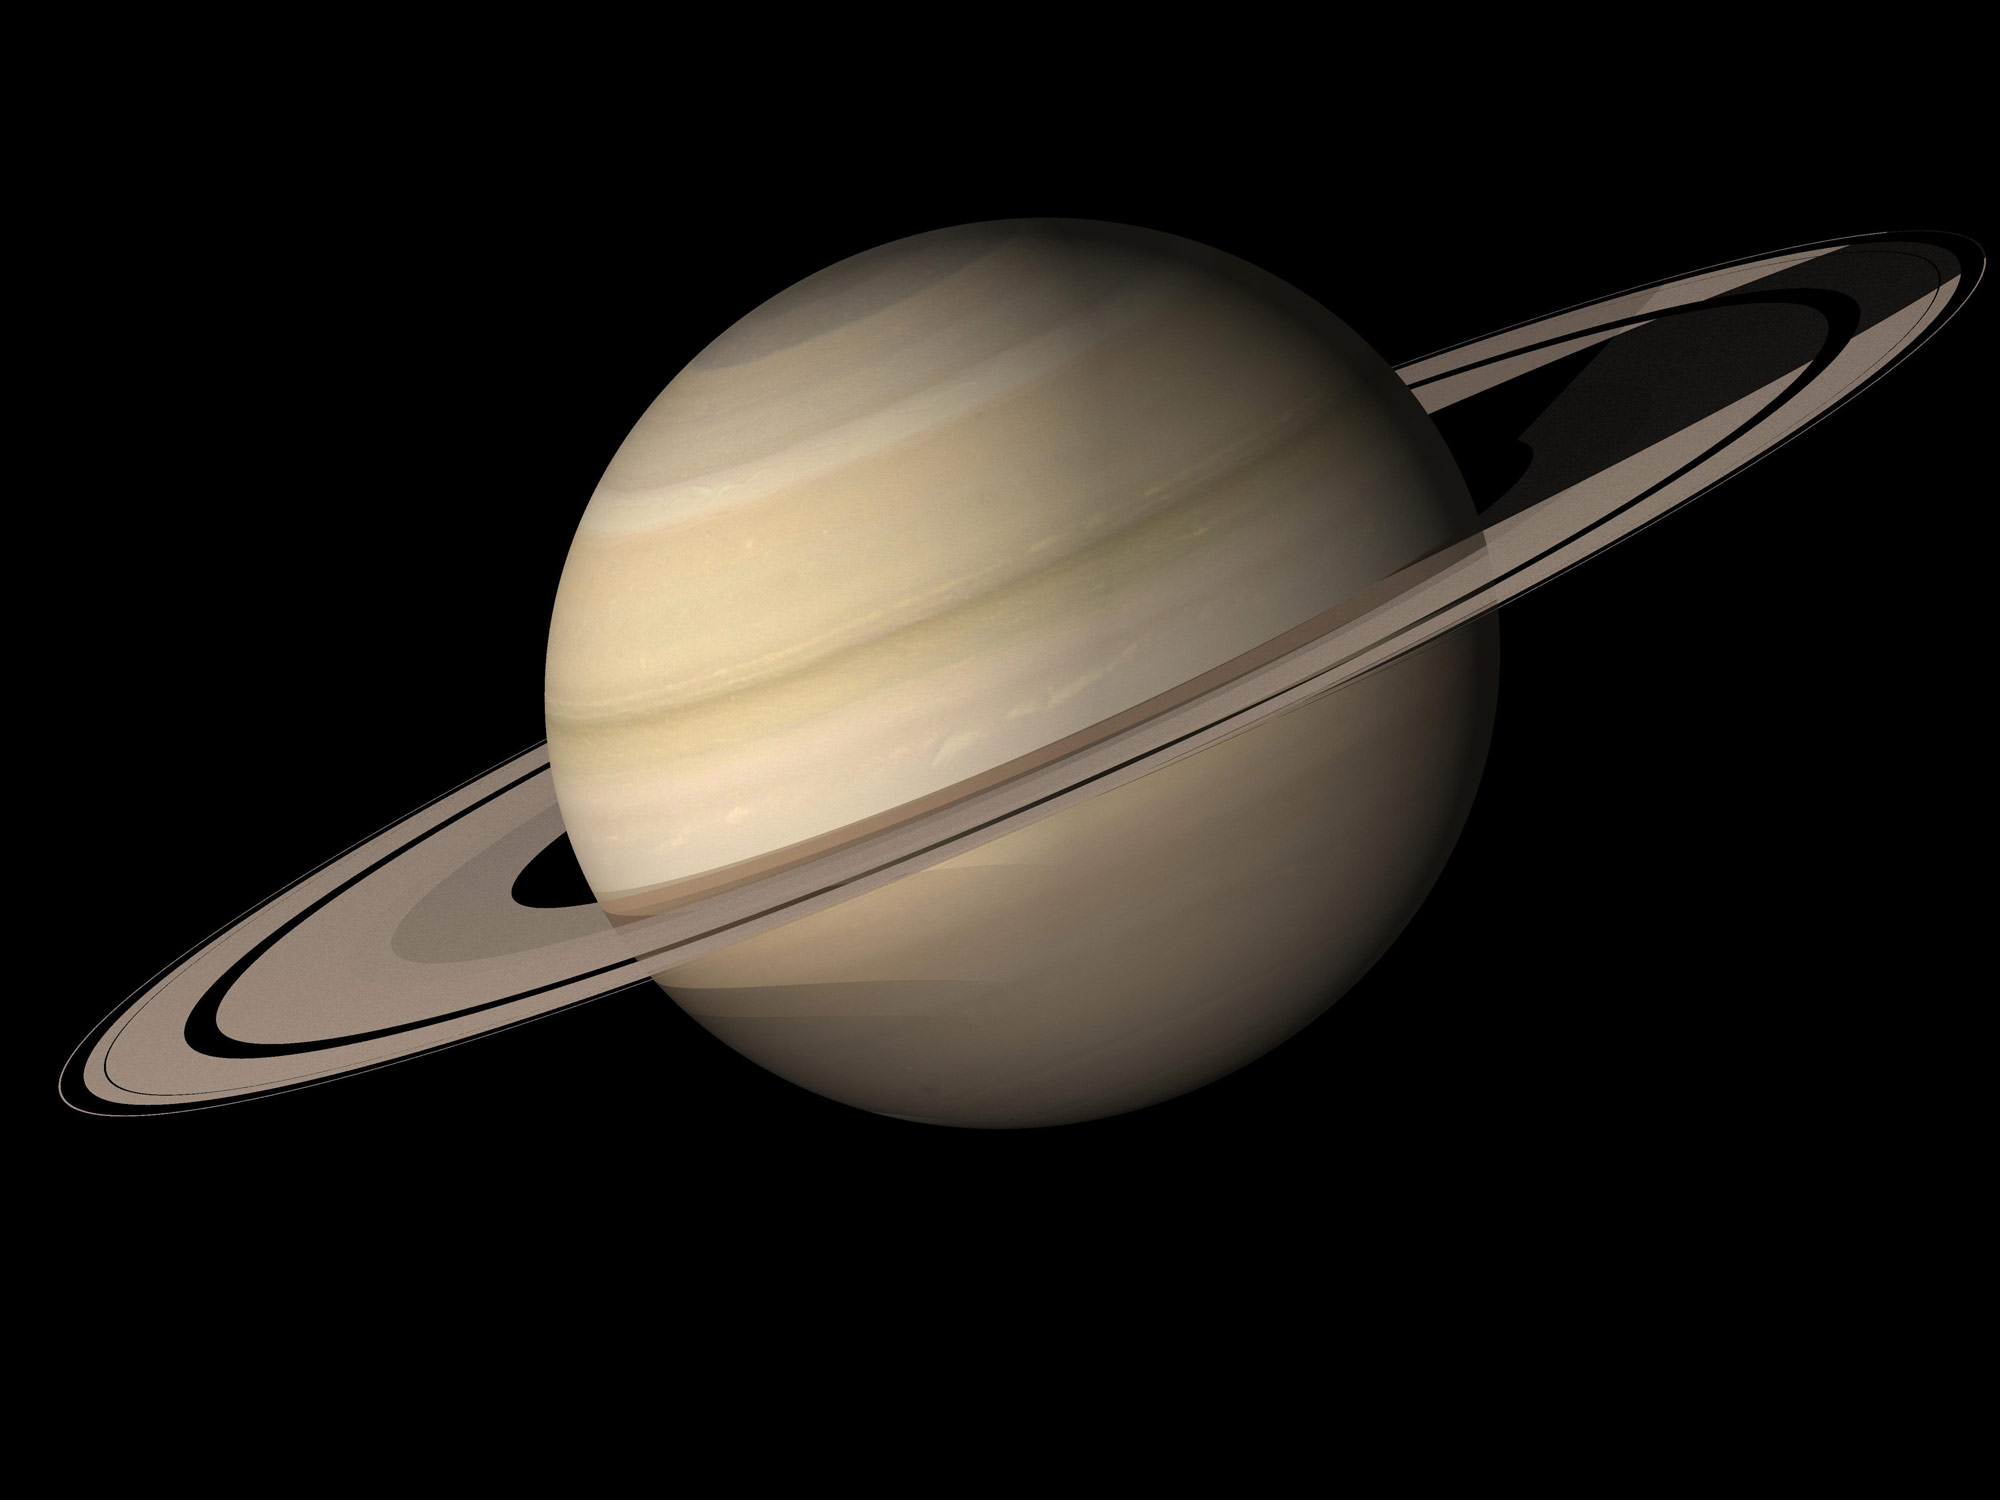 Scientists reveal saturns youthful appearance is the result of researchers discover why saturn appears young altavistaventures Images